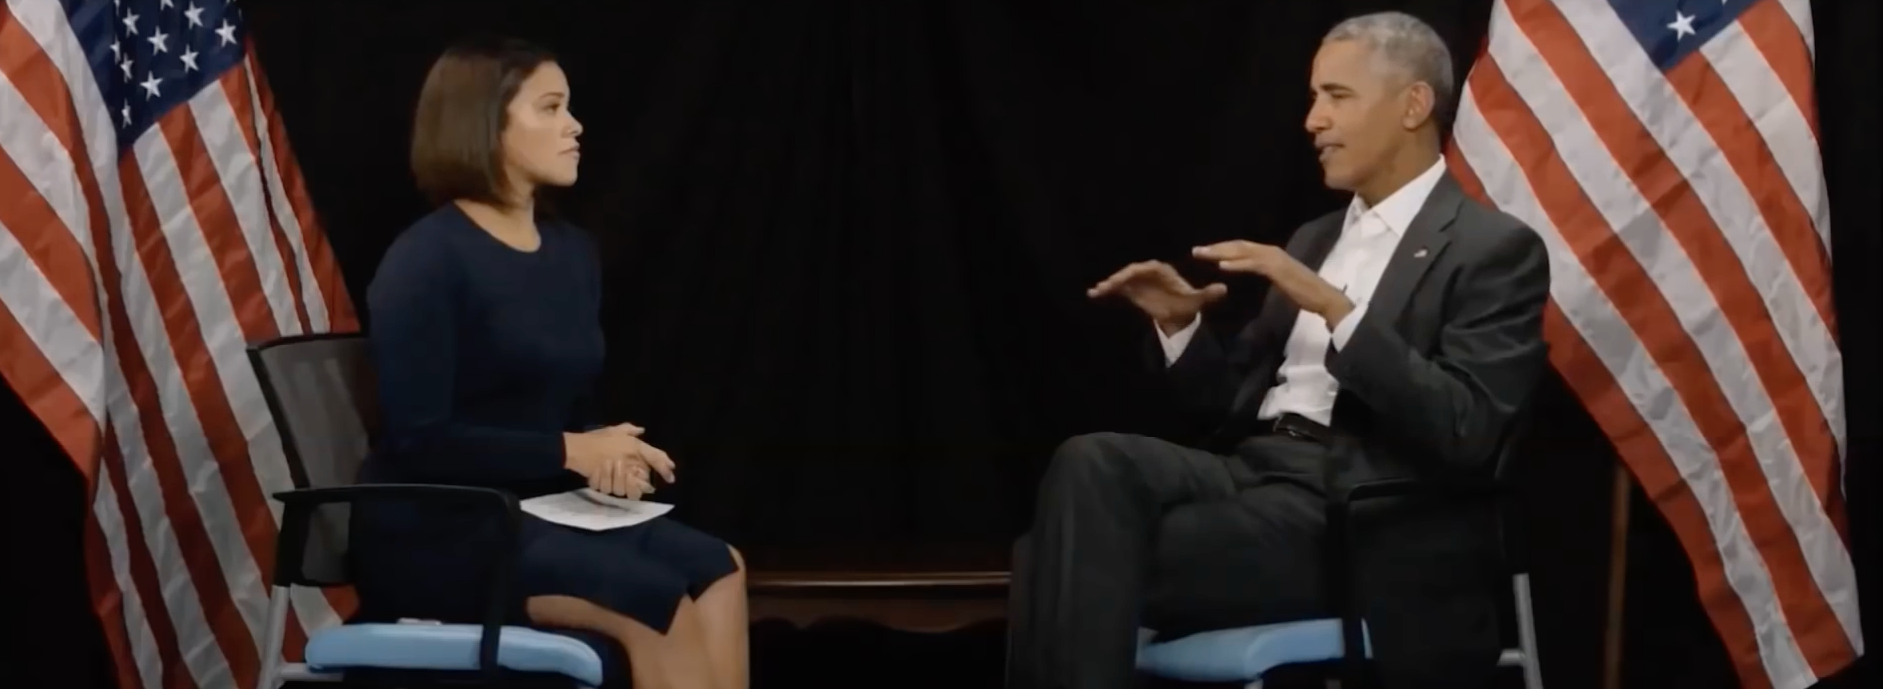 Video: Did Obama Just Tell Illegals It's Okay For Them To Vote? Featured